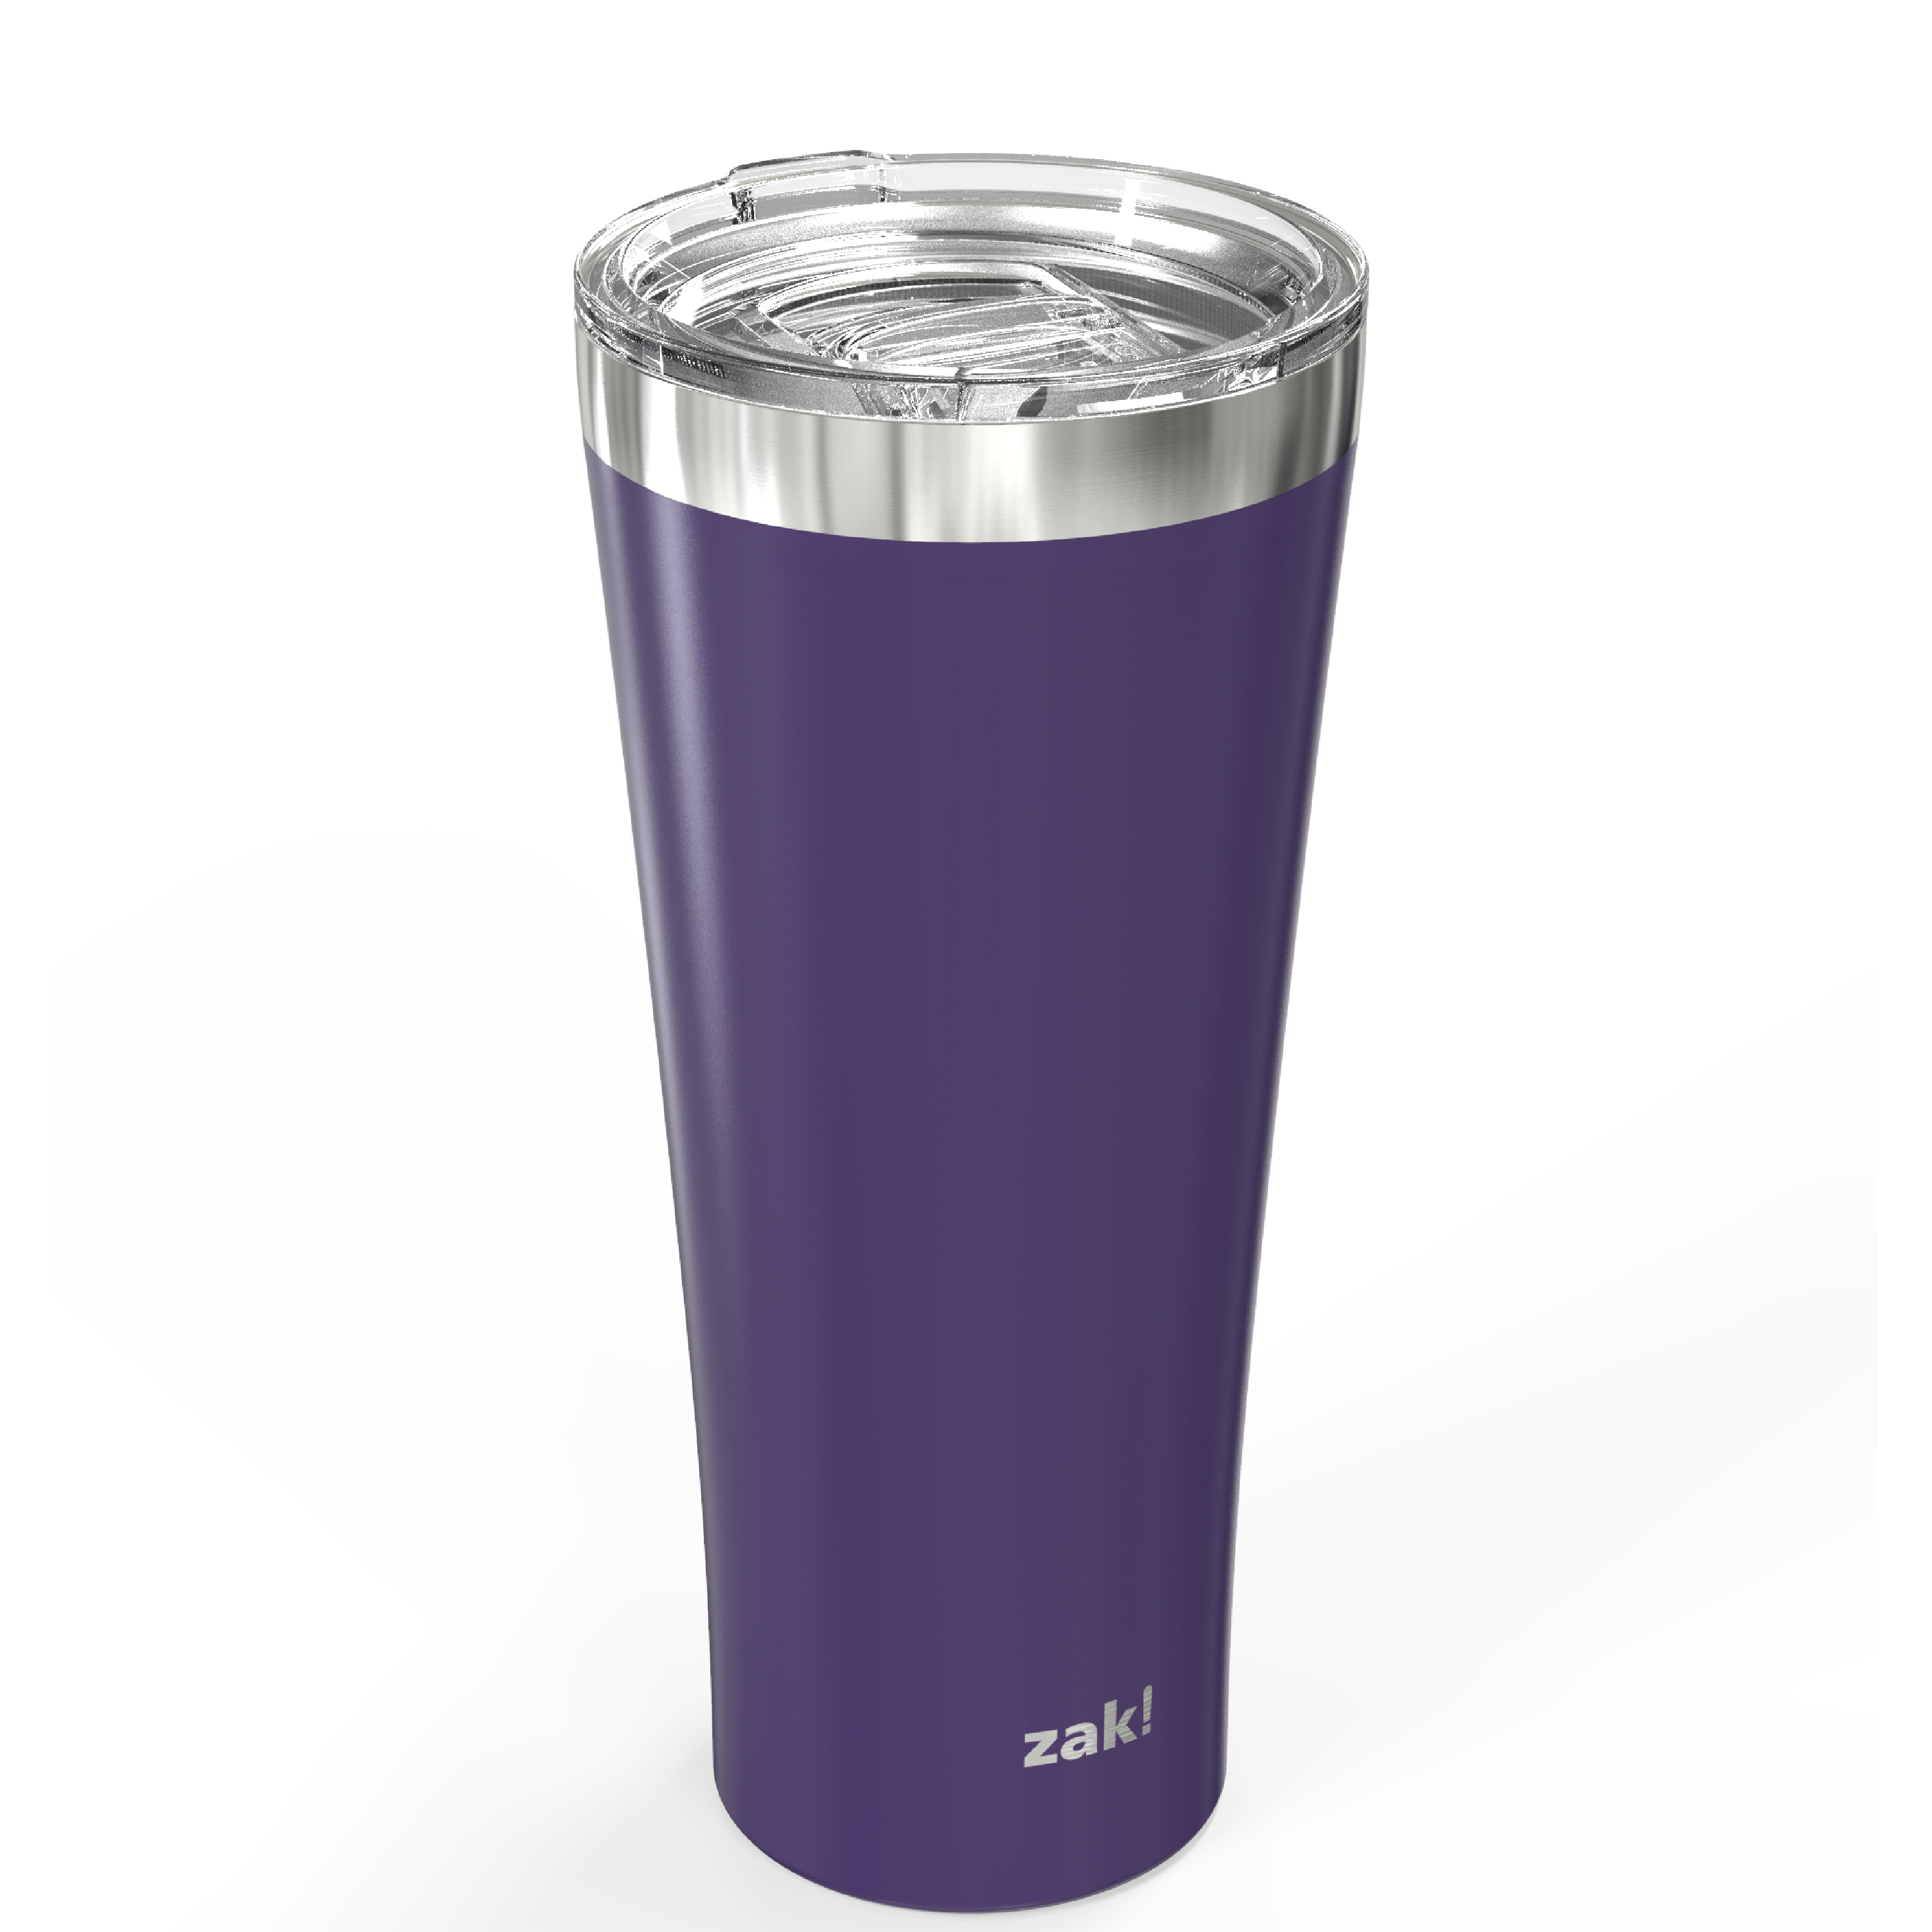 Alpine 30 ounce Stainless Steel Vacuum Insulated Tumbler with Straw, Viola slideshow image 3